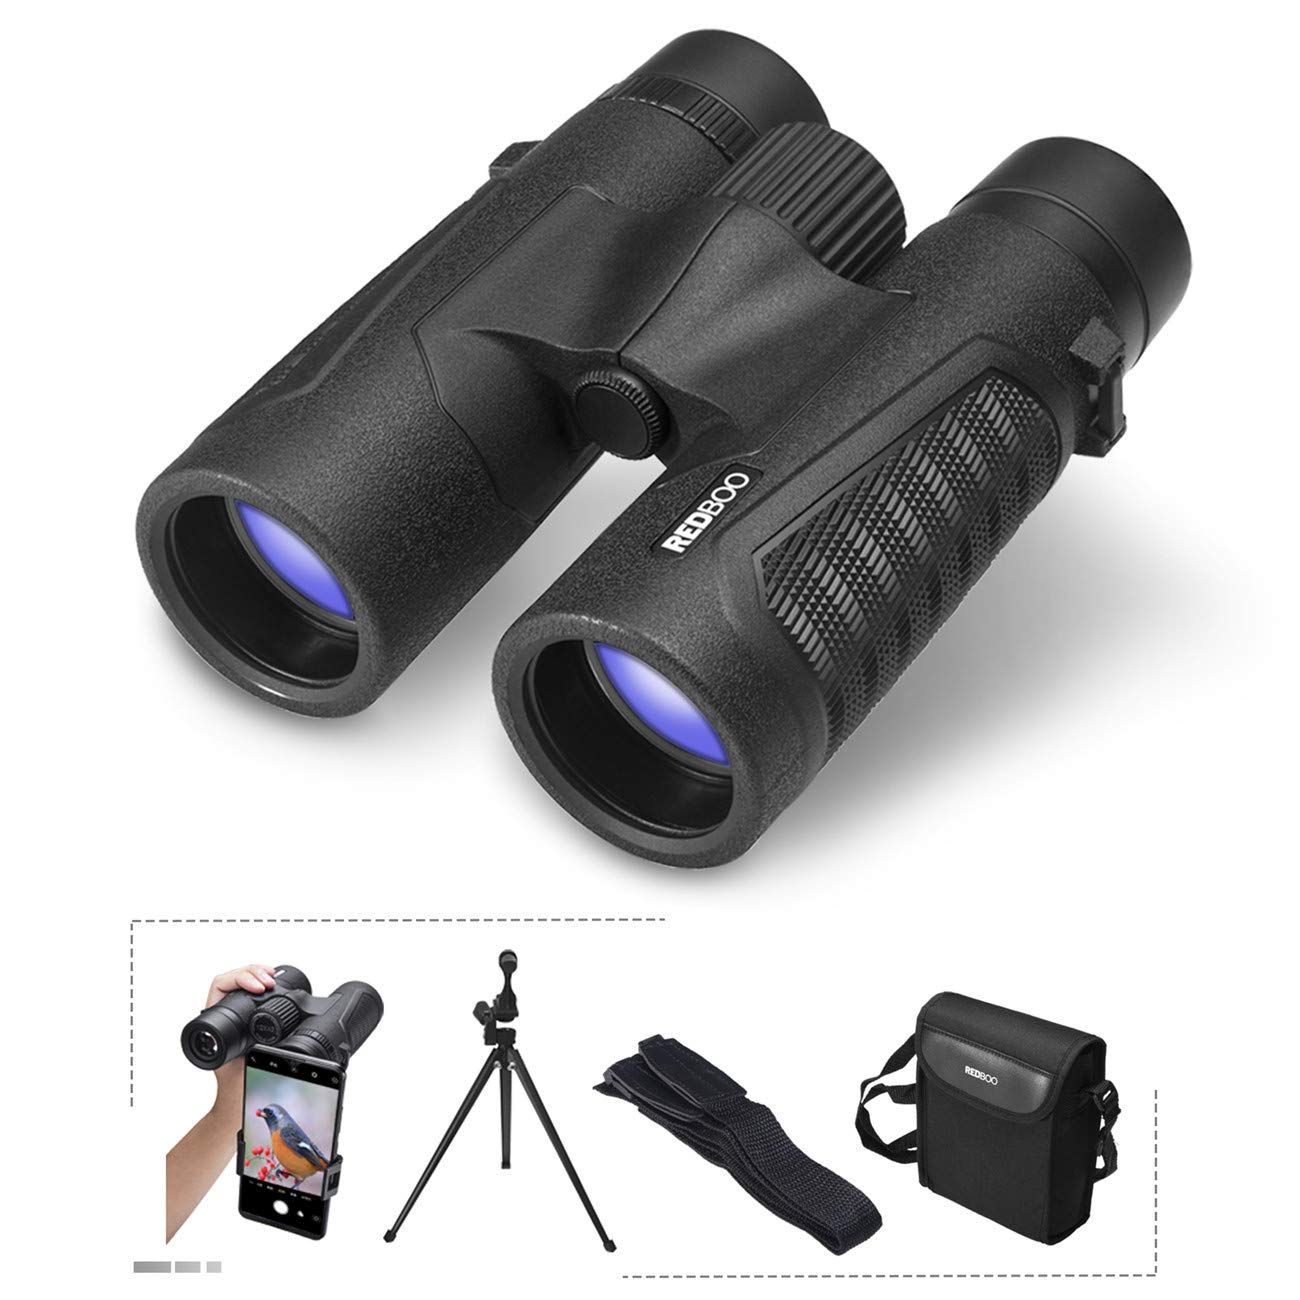 REDBOO Binoculars 12x42   BAK4 Prism FMC Lens   Best for Adults, Bird Watching, Sports Events, Concerts or Hunting - Includes Phone Adapter, Tripod, Neck Strap, L Bracket, Case, and Cleaning Cloth by REDBOO